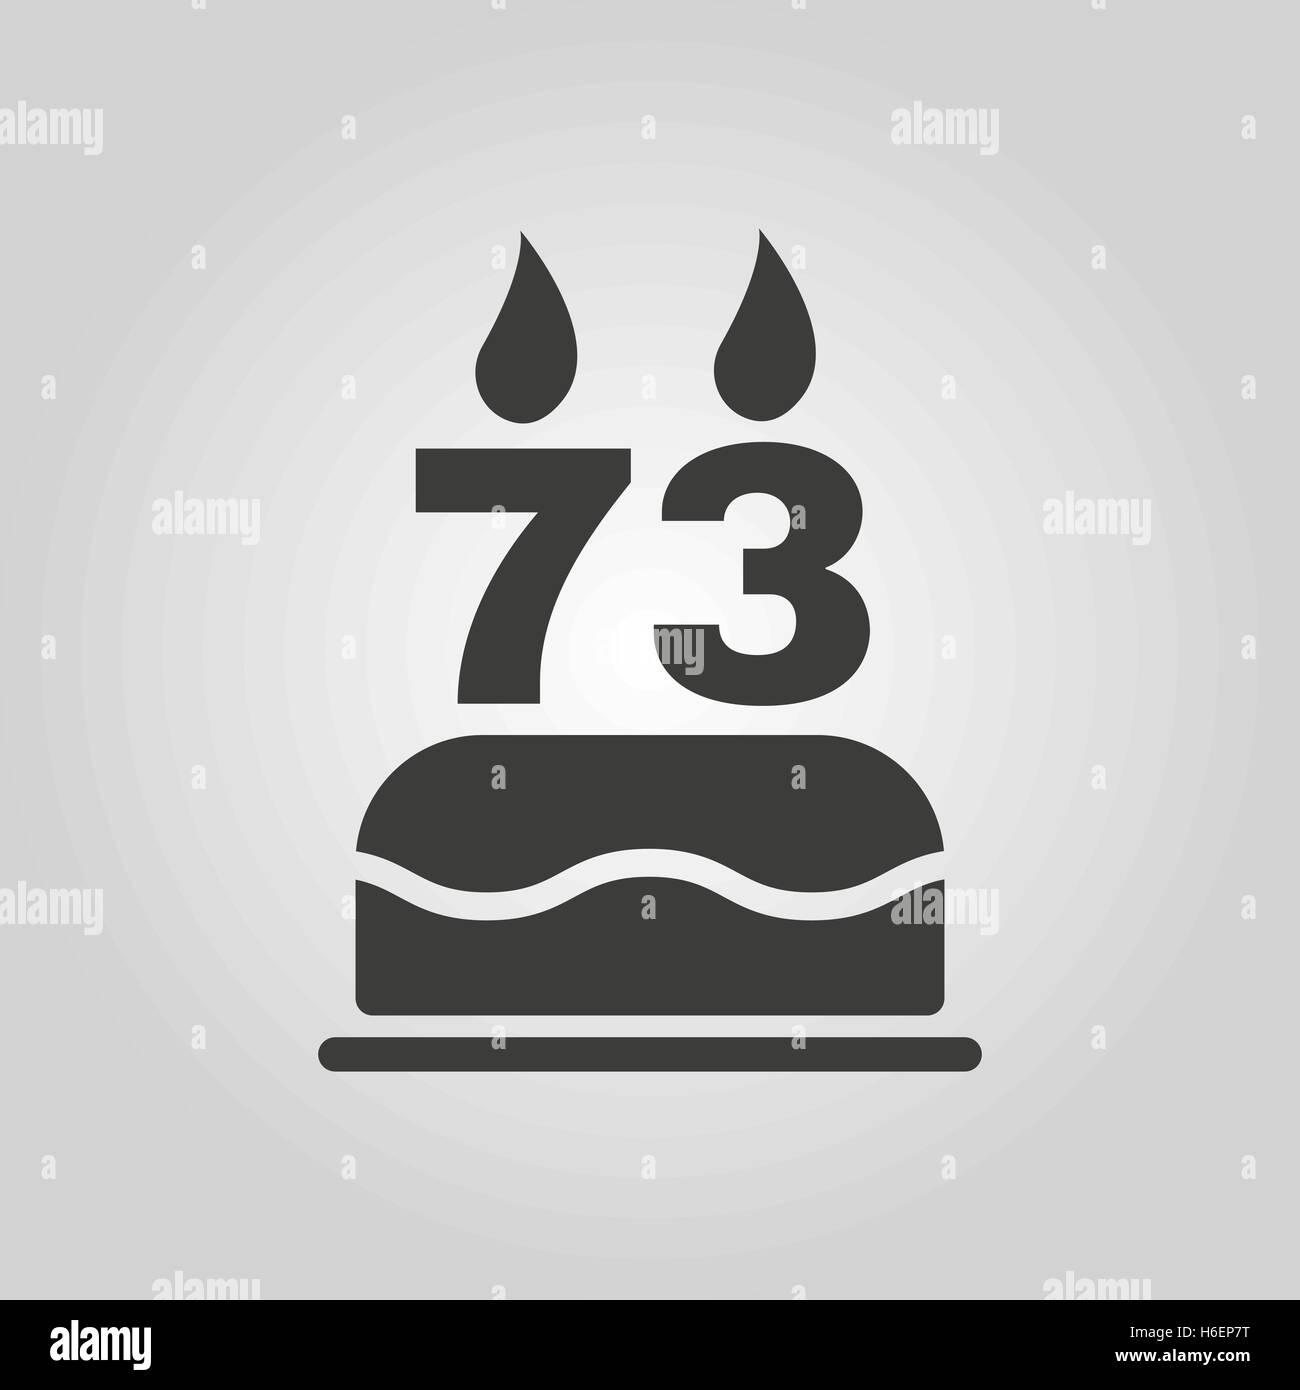 The Birthday Cake With Candles In The Form Of Number 73 Icon Stock